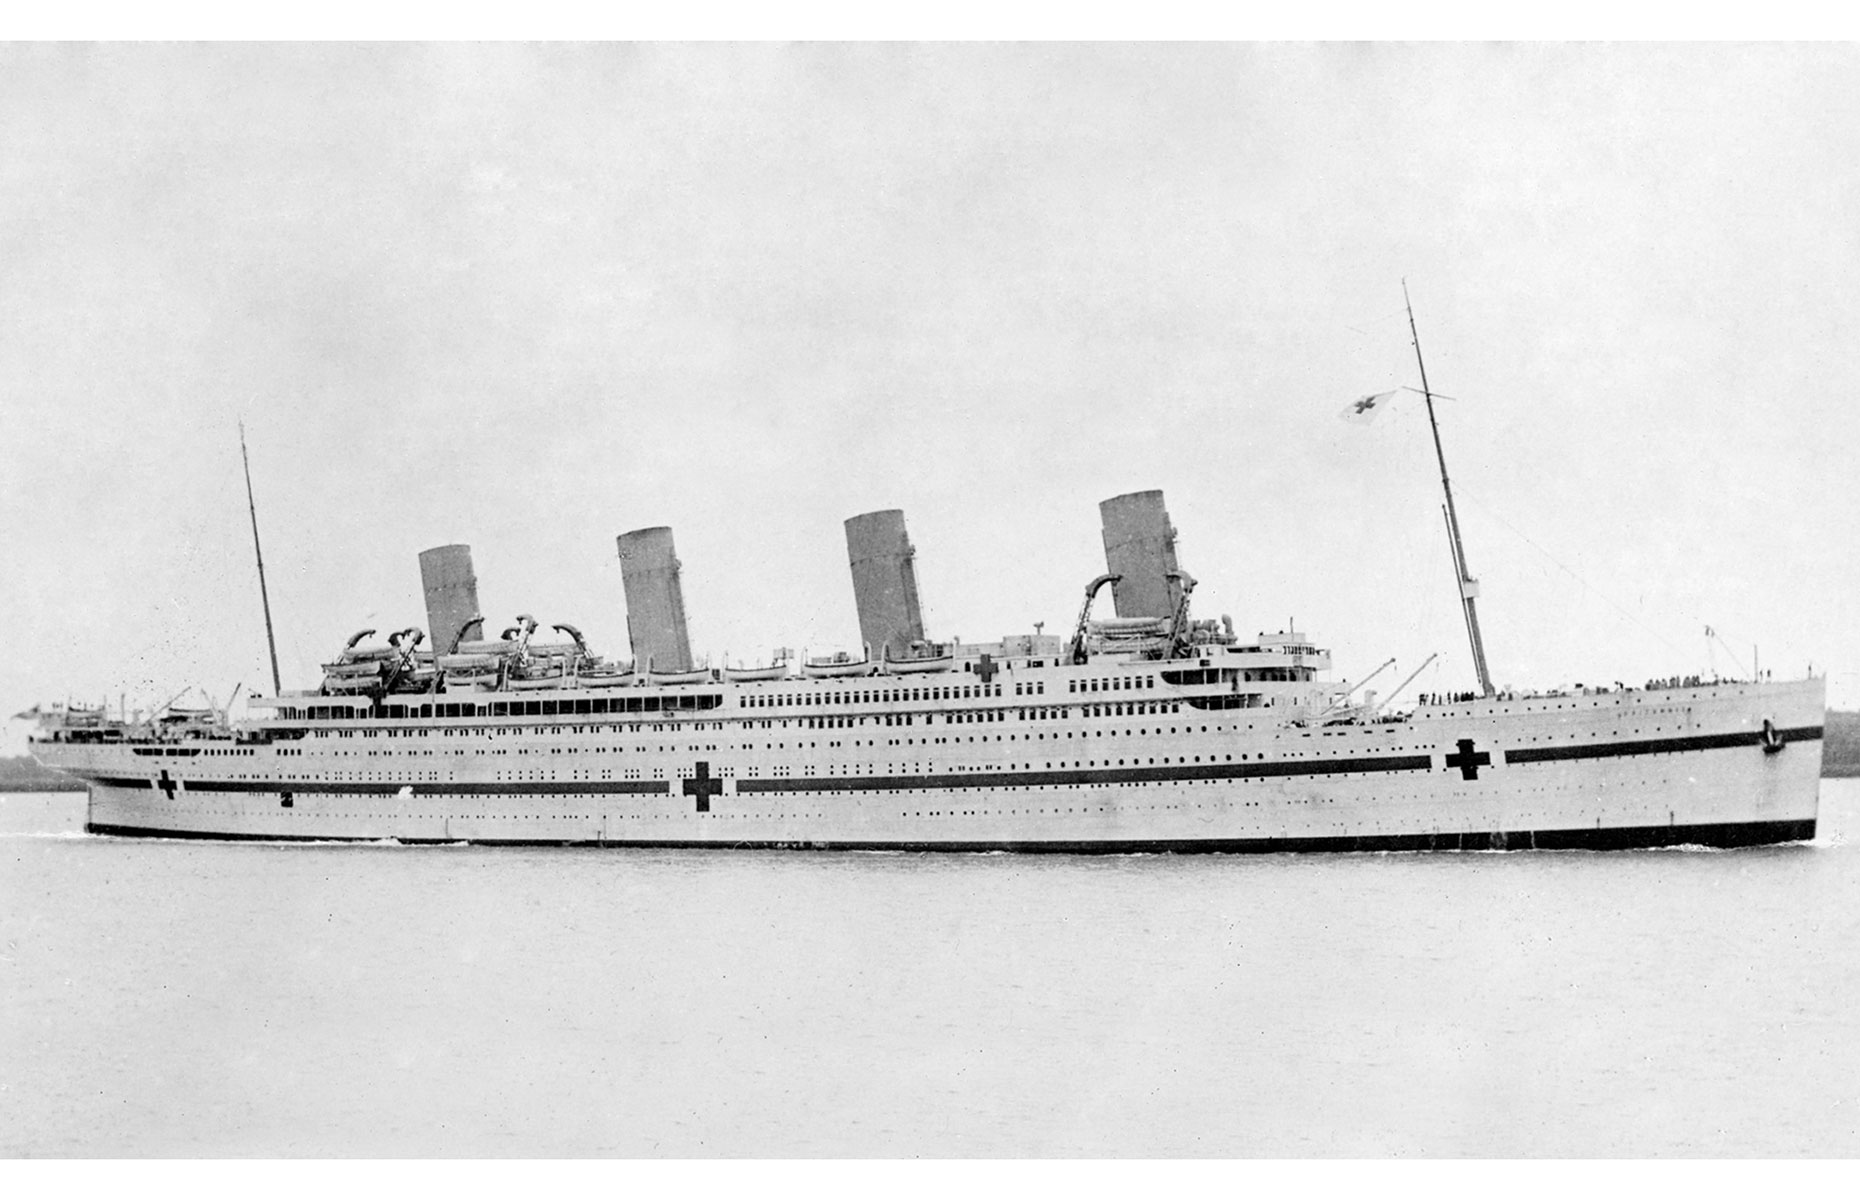 HMHS Britannic was repainted when she was re-purposed as a hospital ship (Image: Allan Green/Public domain/via Wikimedia Commons)